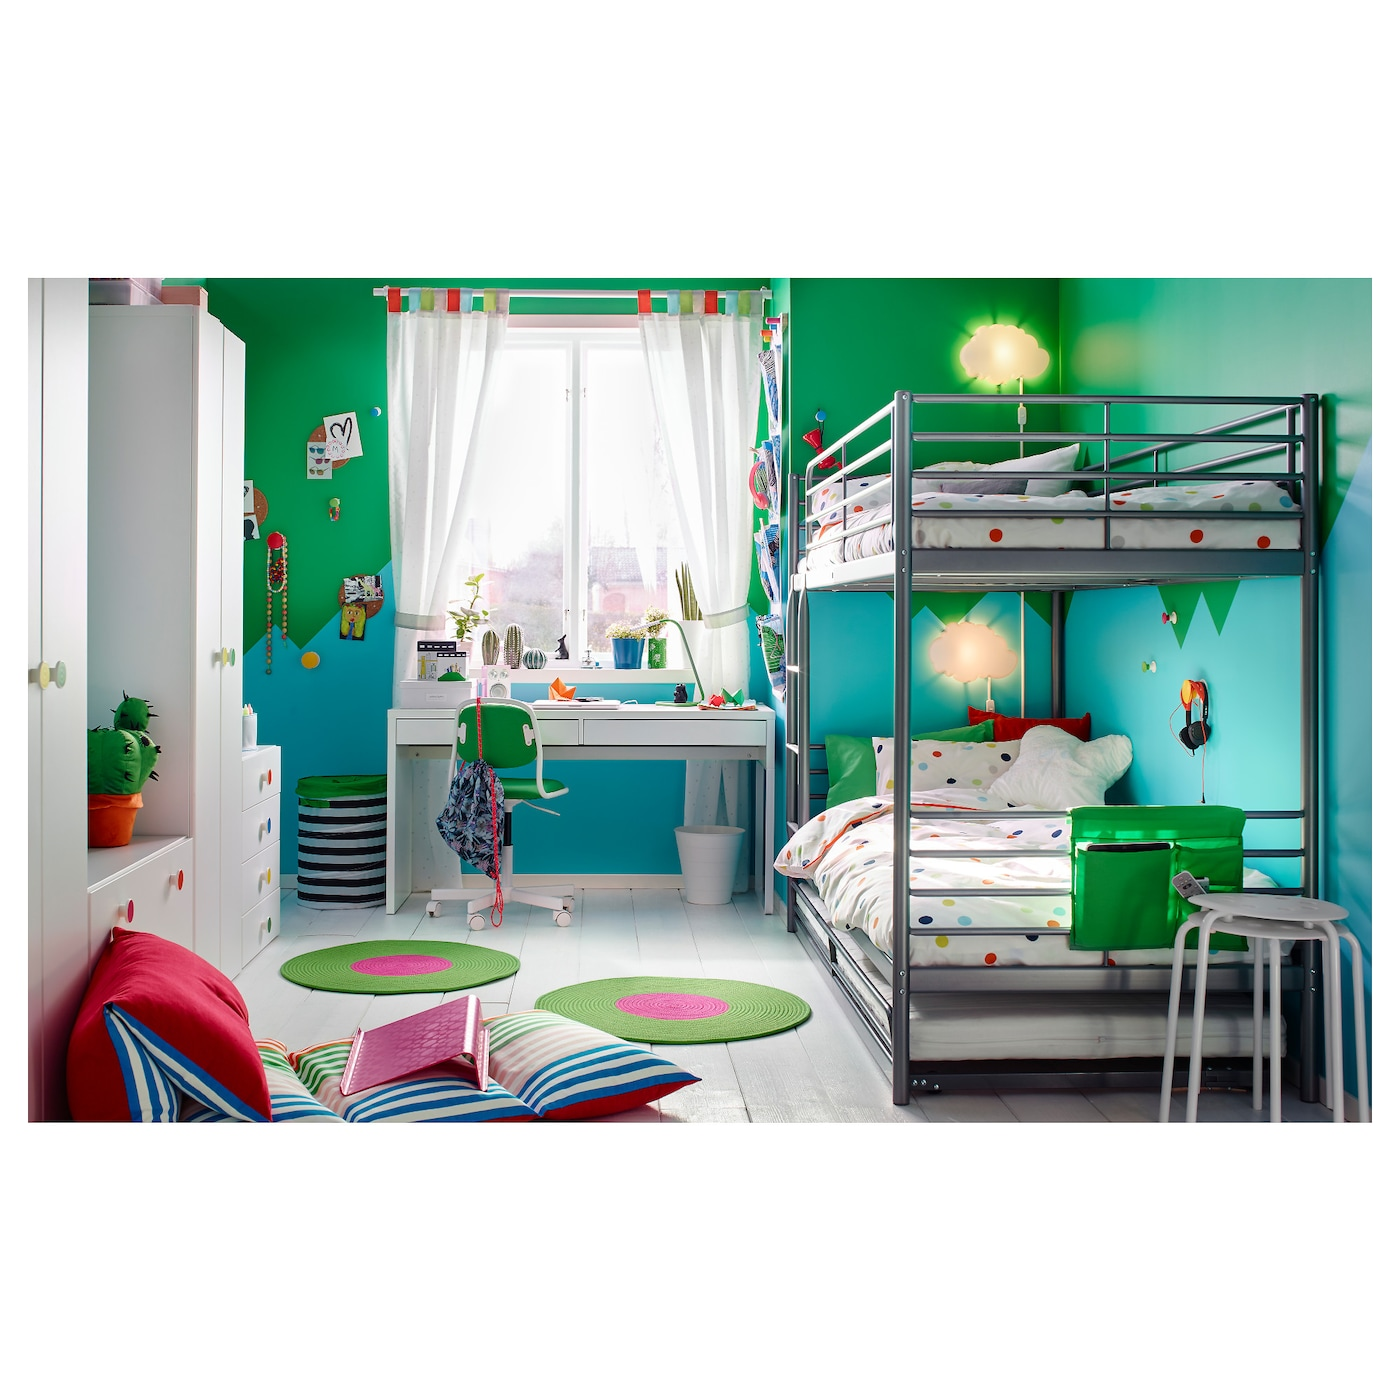 ideas fall g painting toddler door beds hack frame bunk ikea decor bed